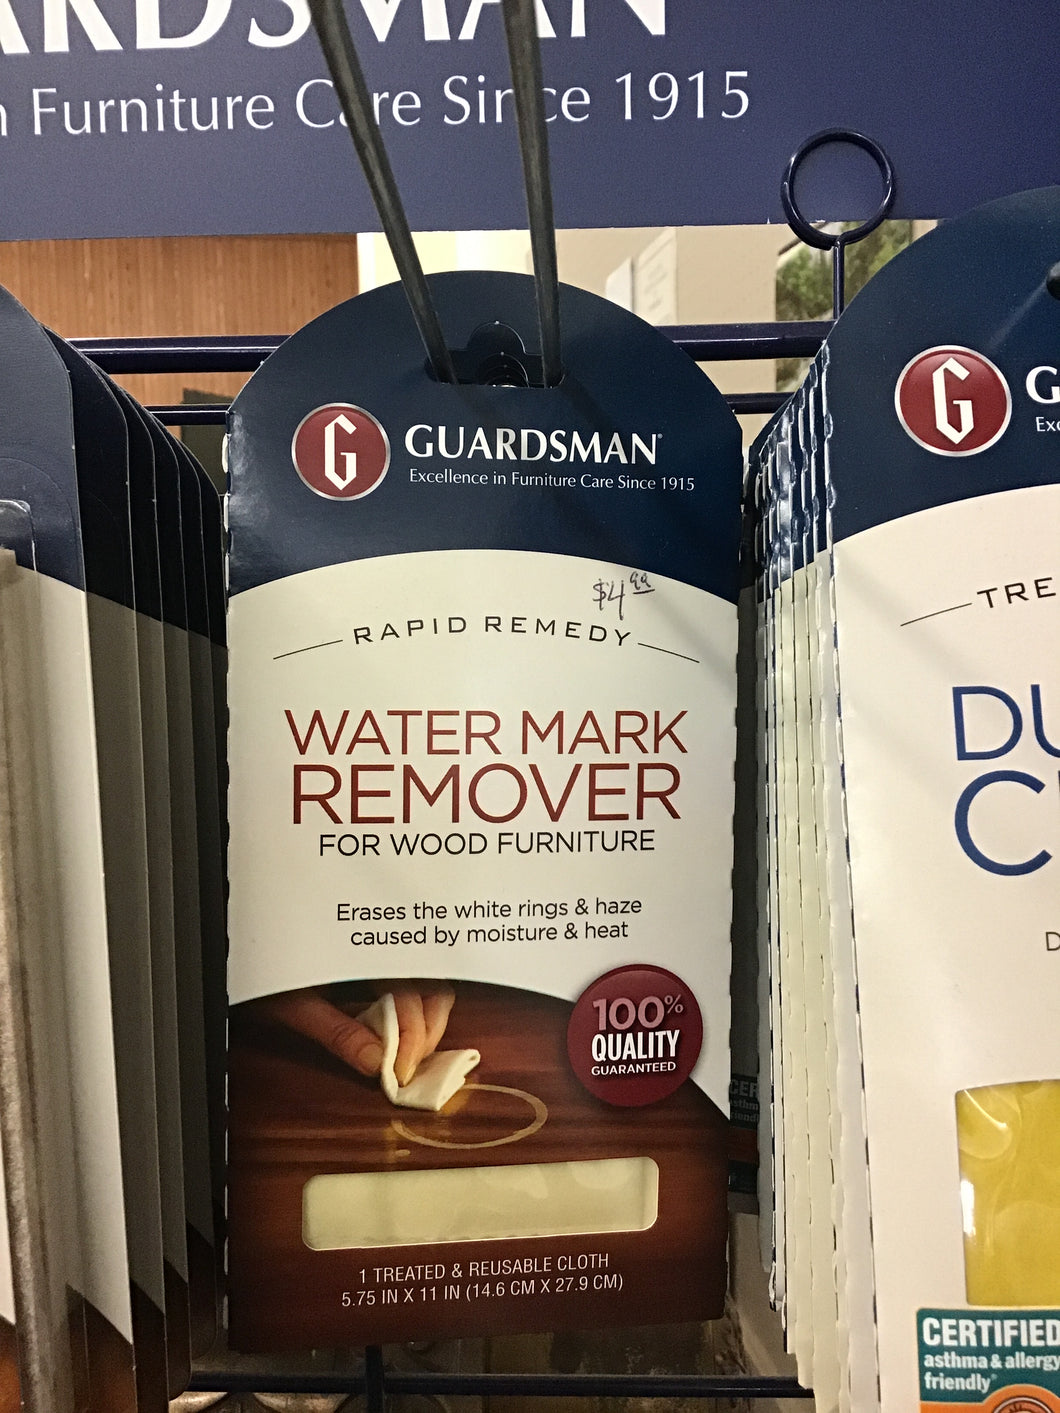 Guardsman Water Mark Remover for Wood Furniture